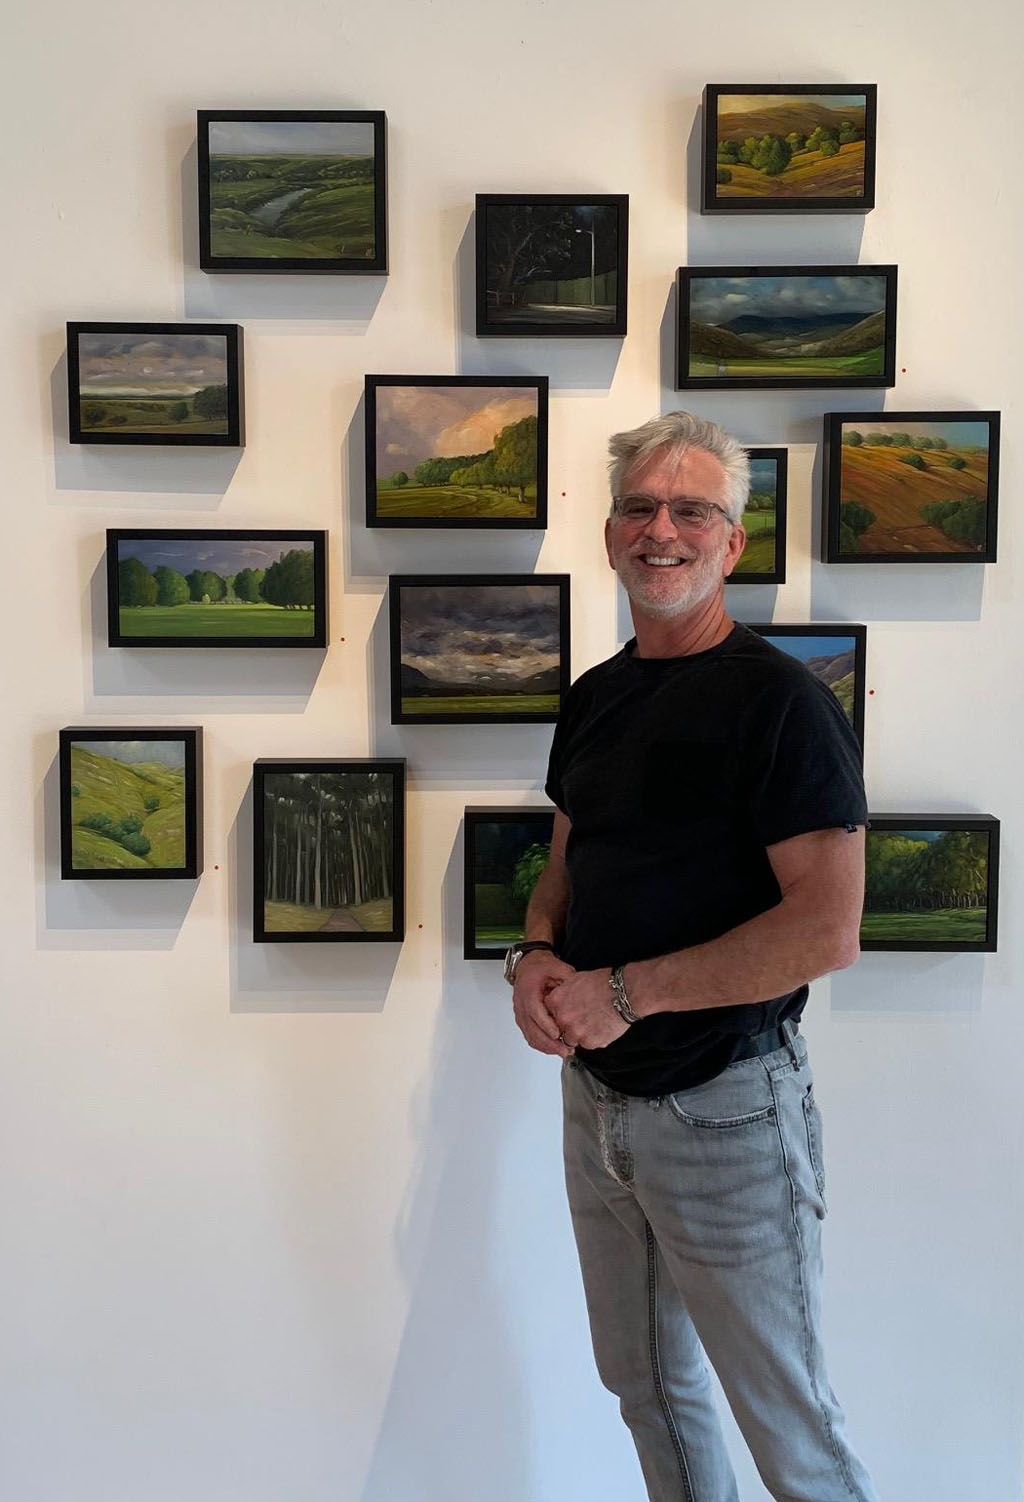 Ross Penhall | West Vancouver Artist at Caldwell Snyder